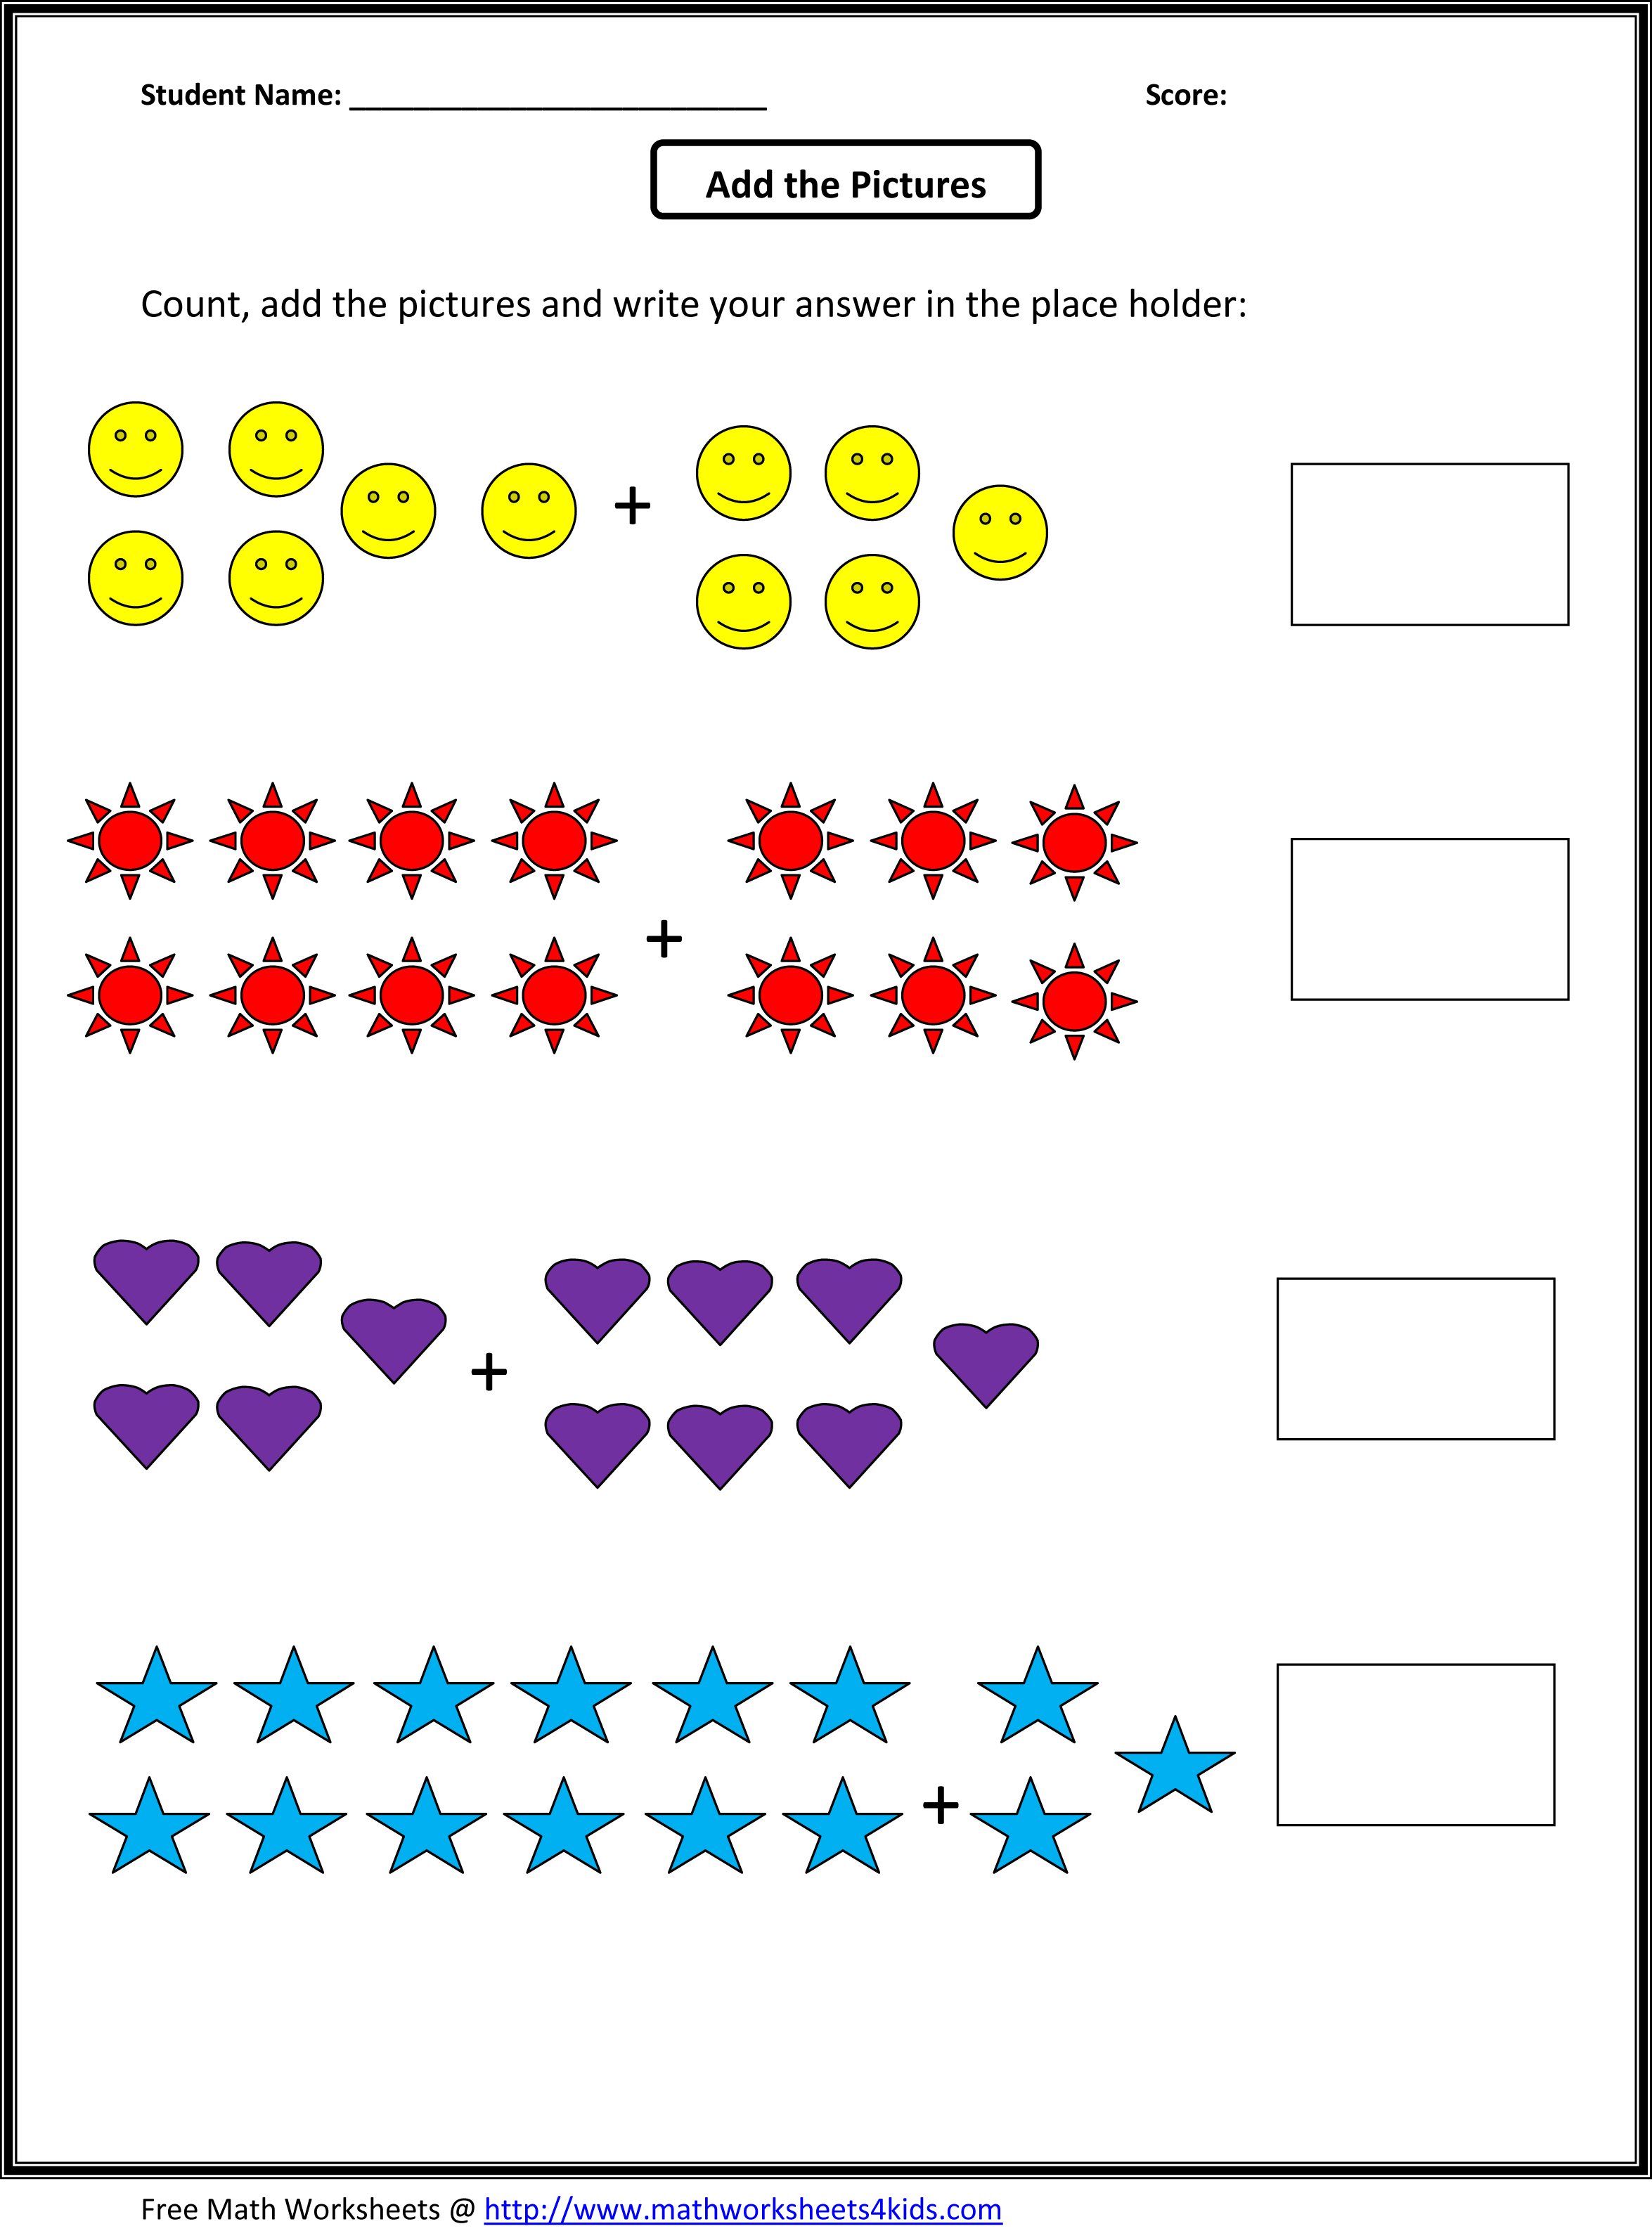 Weirdmailus  Ravishing Grade  Maths Worksheet  Reocurent With Handsome Math Worksheets For St Grade Free  Reocurent With Adorable Self Esteem Worksheets Girls Also Self Esteem Building Worksheets Printable In Addition Dangling Participle Worksheet And Two Digit Divisors Worksheets As Well As Free Algebra Worksheets With Answers Additionally Multiplying Positive And Negative Numbers Worksheets From Reocurentcom With Weirdmailus  Handsome Grade  Maths Worksheet  Reocurent With Adorable Math Worksheets For St Grade Free  Reocurent And Ravishing Self Esteem Worksheets Girls Also Self Esteem Building Worksheets Printable In Addition Dangling Participle Worksheet From Reocurentcom